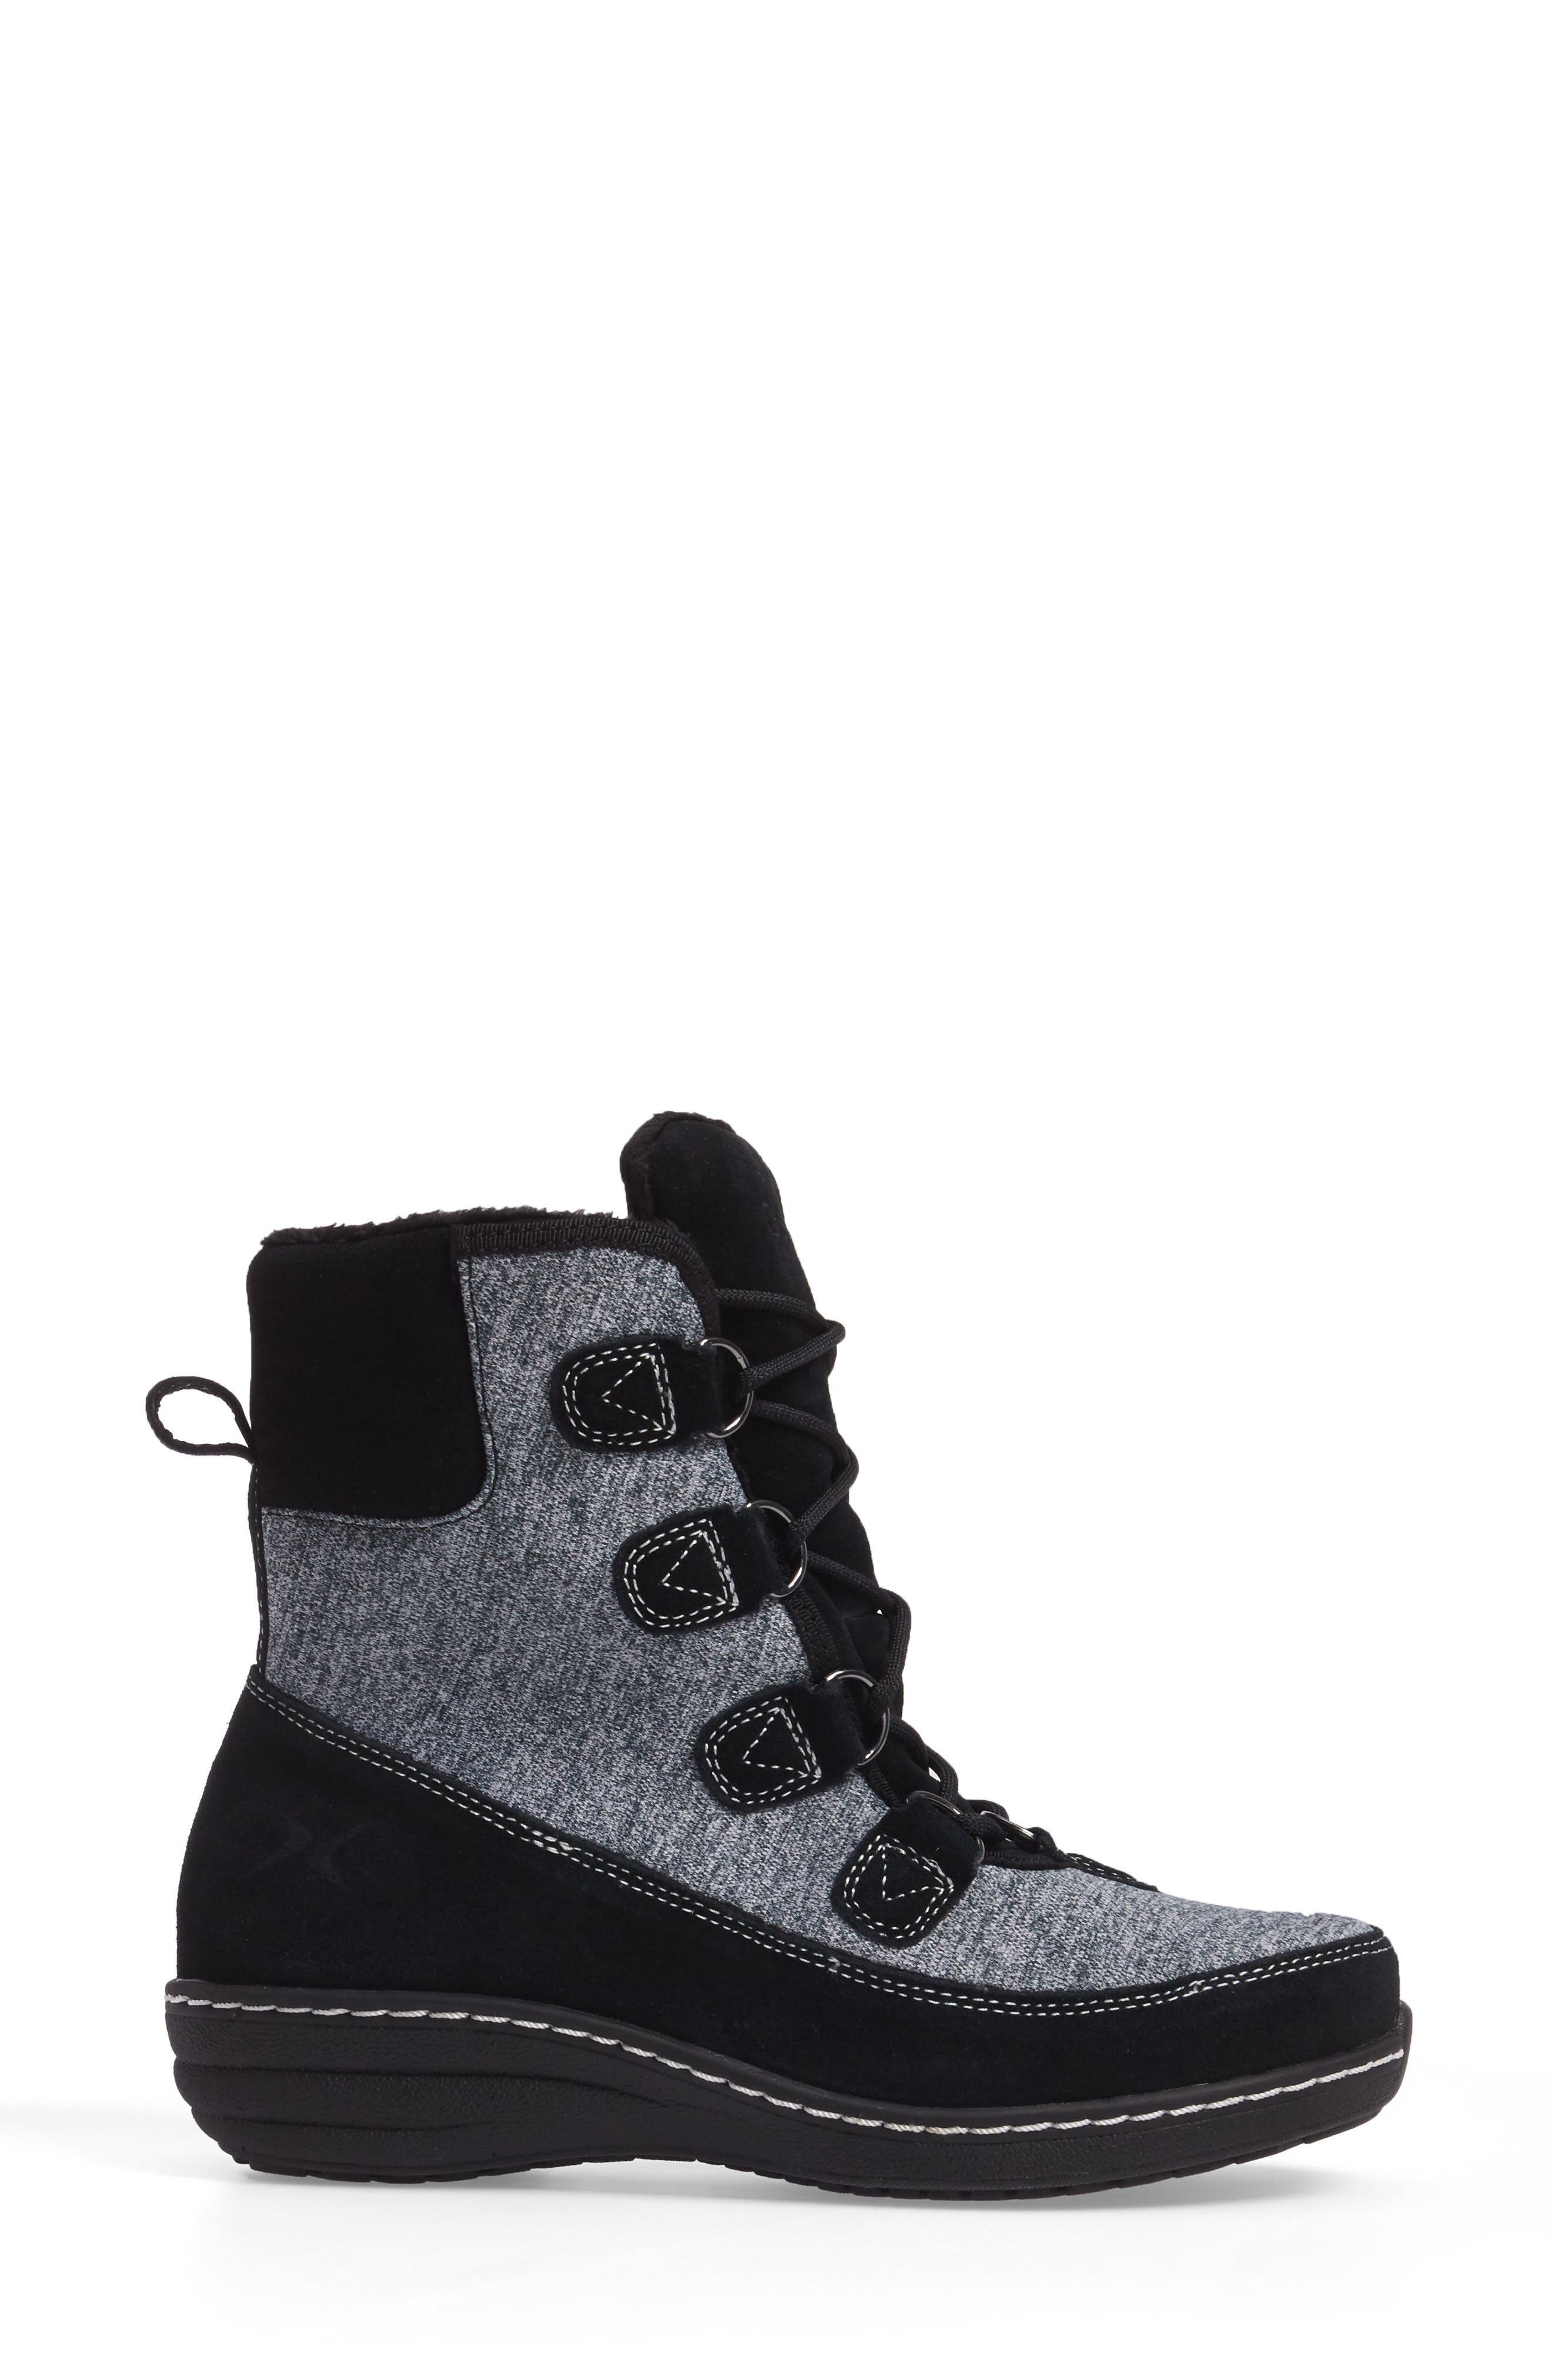 Berries Water Resistant Boot,                             Alternate thumbnail 3, color,                             MULTIBERRY SUEDE